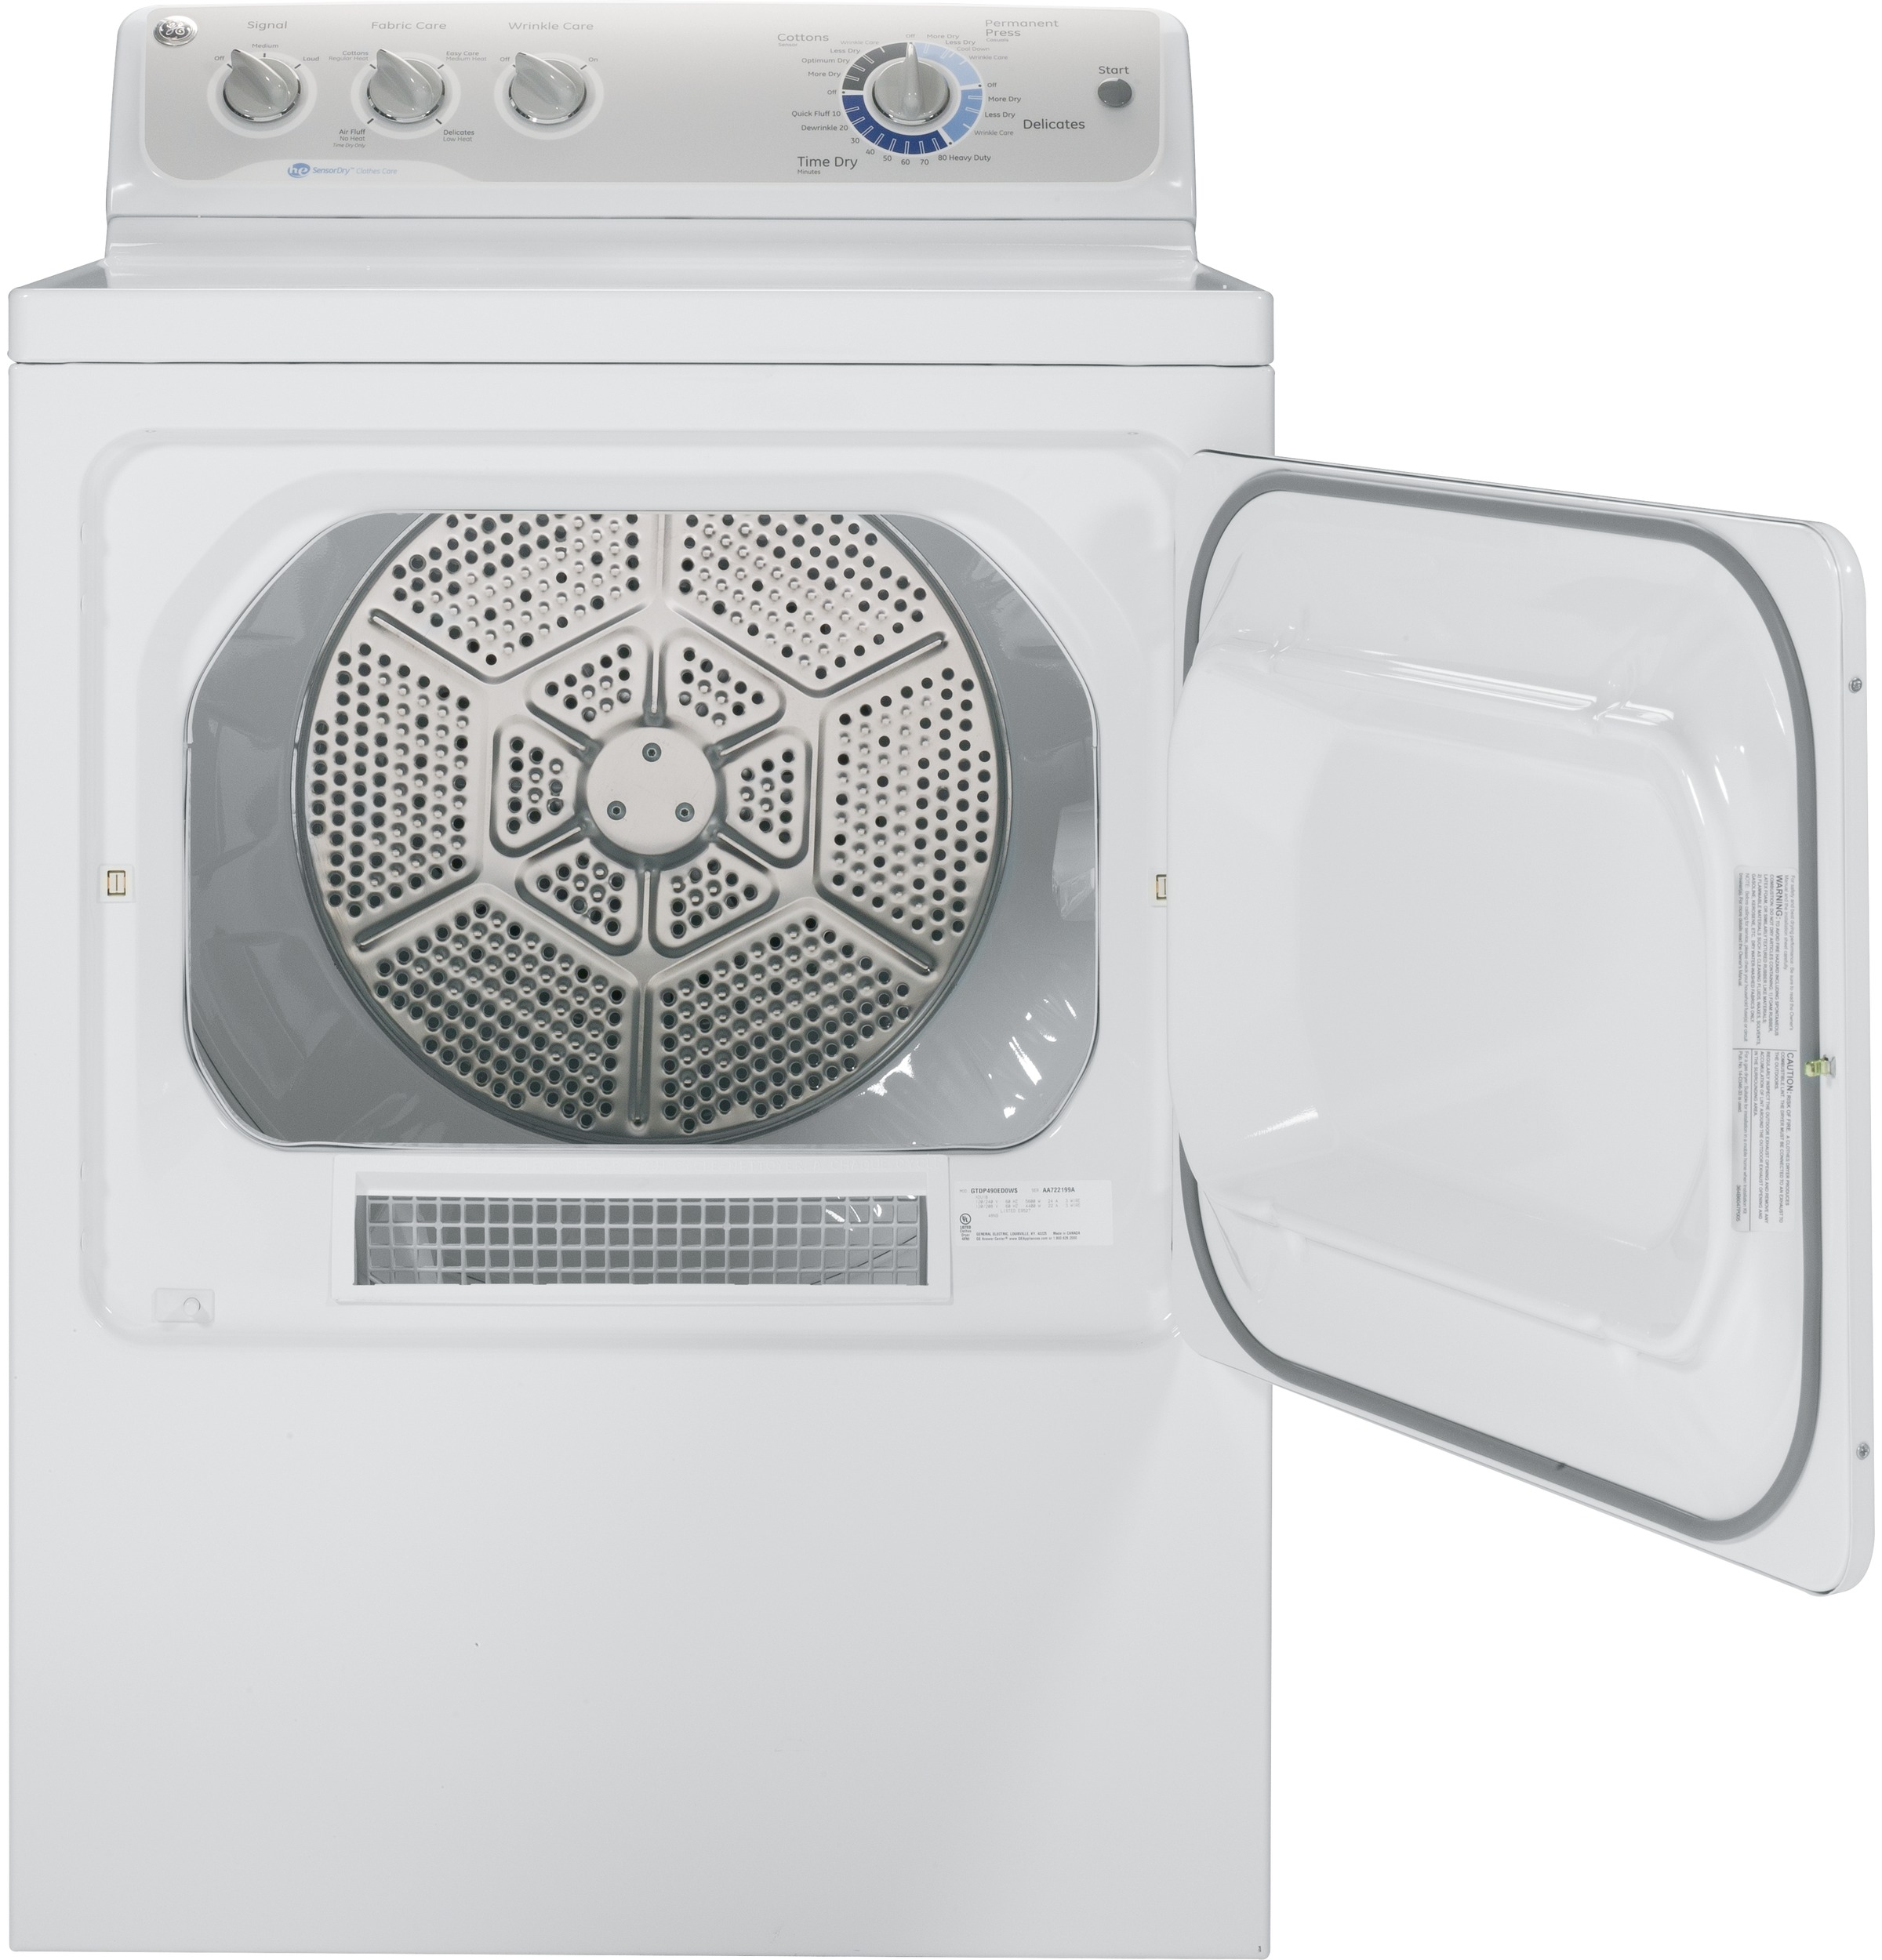 GE Appliances 7.0 cu. ft. Electric Dryer - White GTDP490EDWS